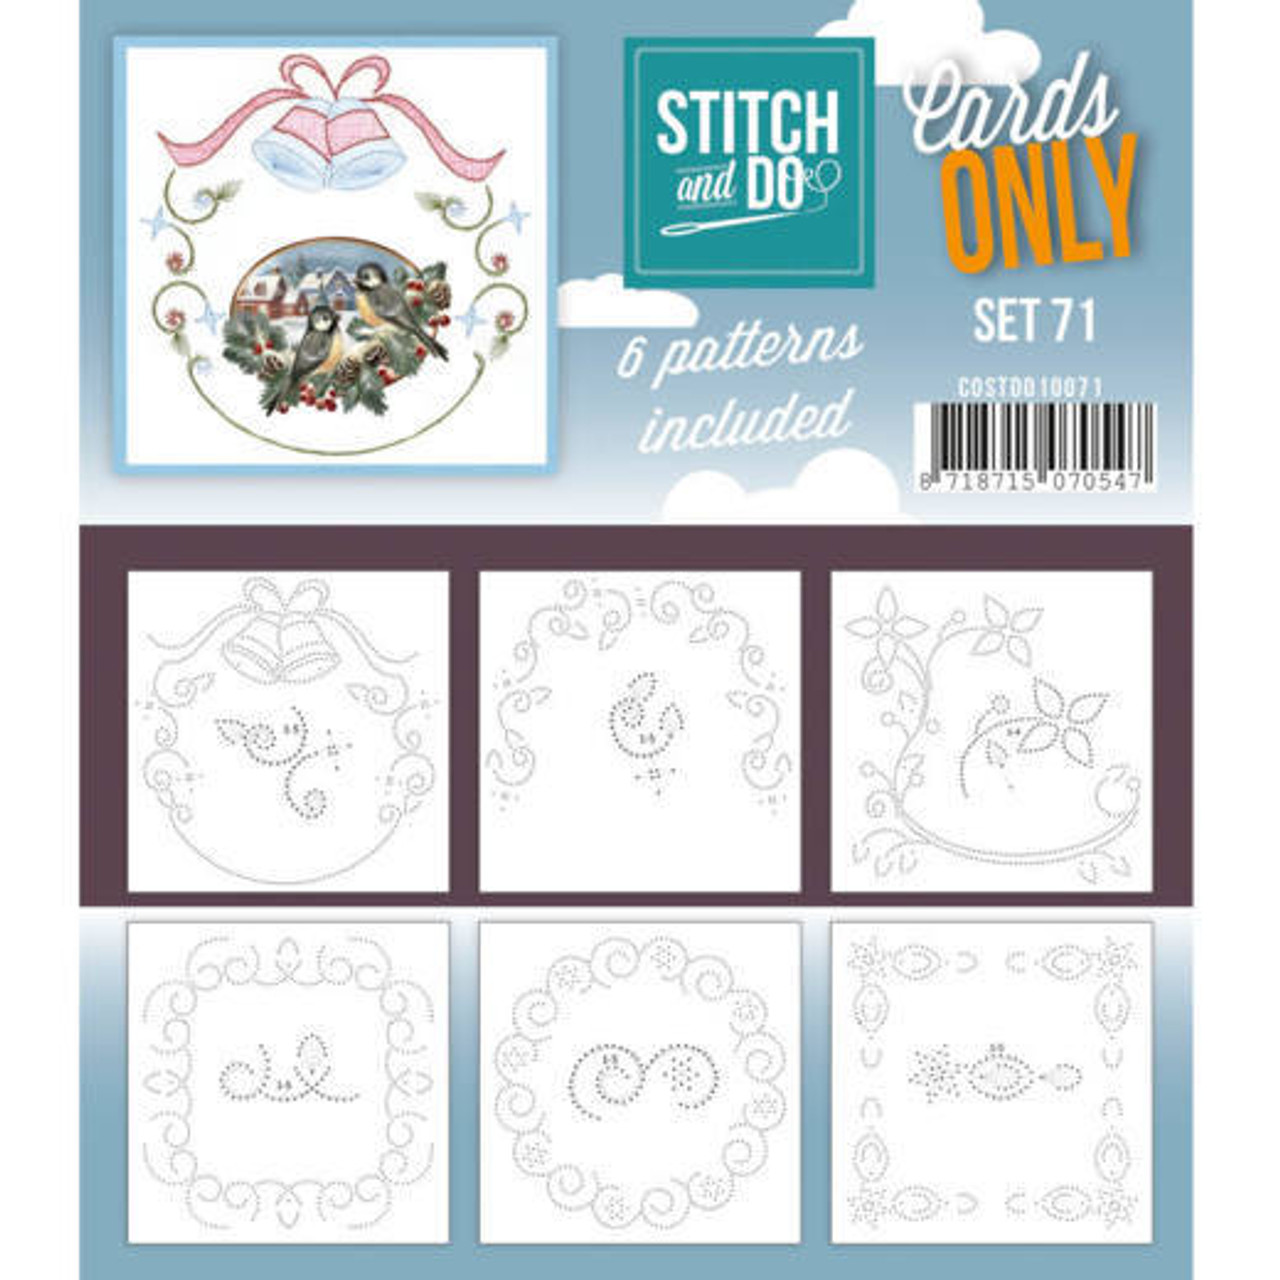 Stitch and Do Card Stitching Cardlayers Only - Set 71